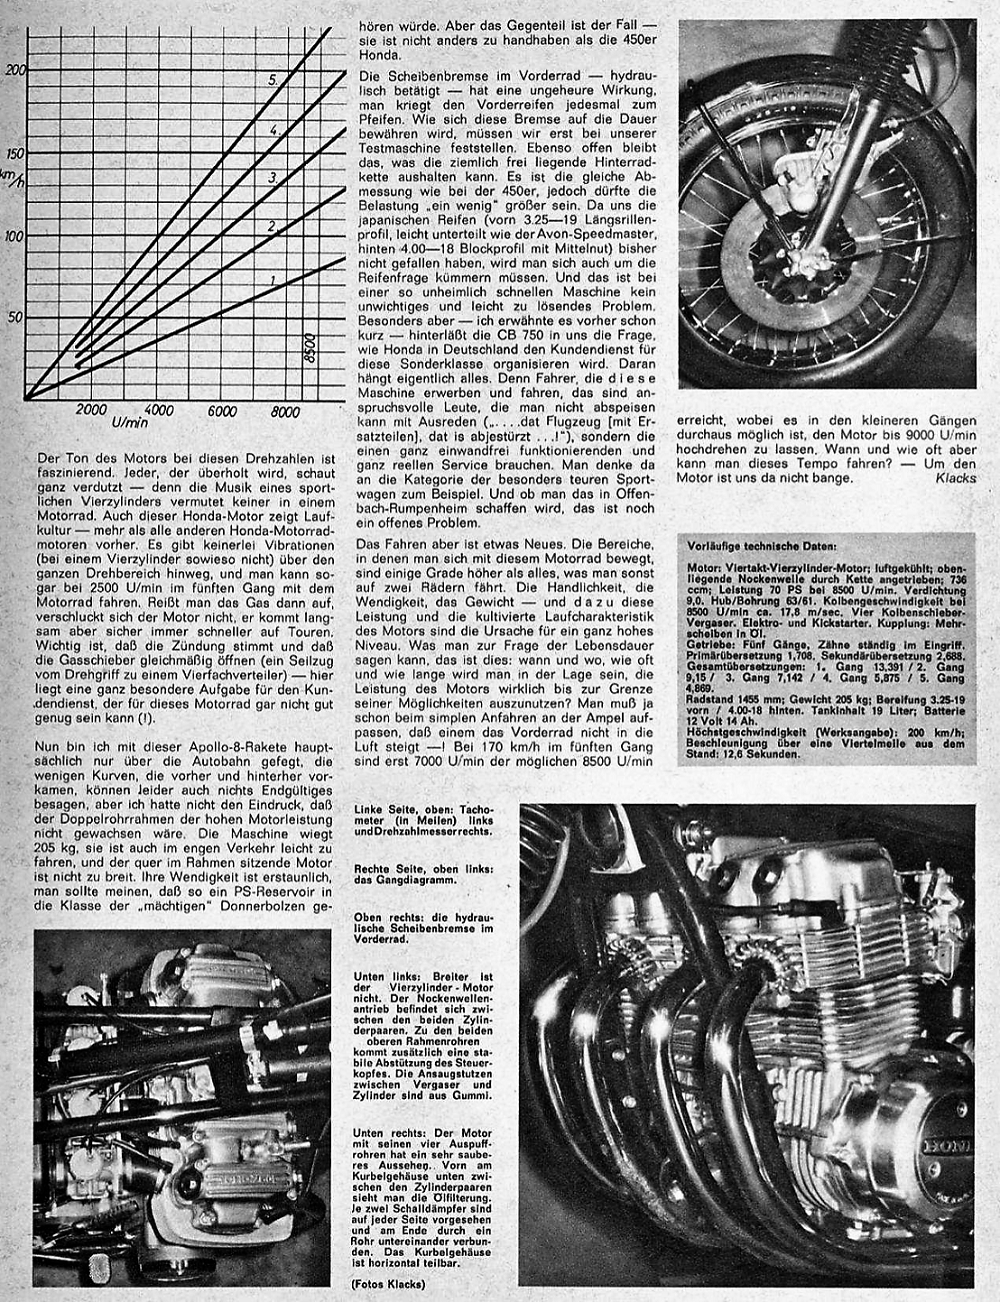 1968 Honda 750 road test.2.jpg